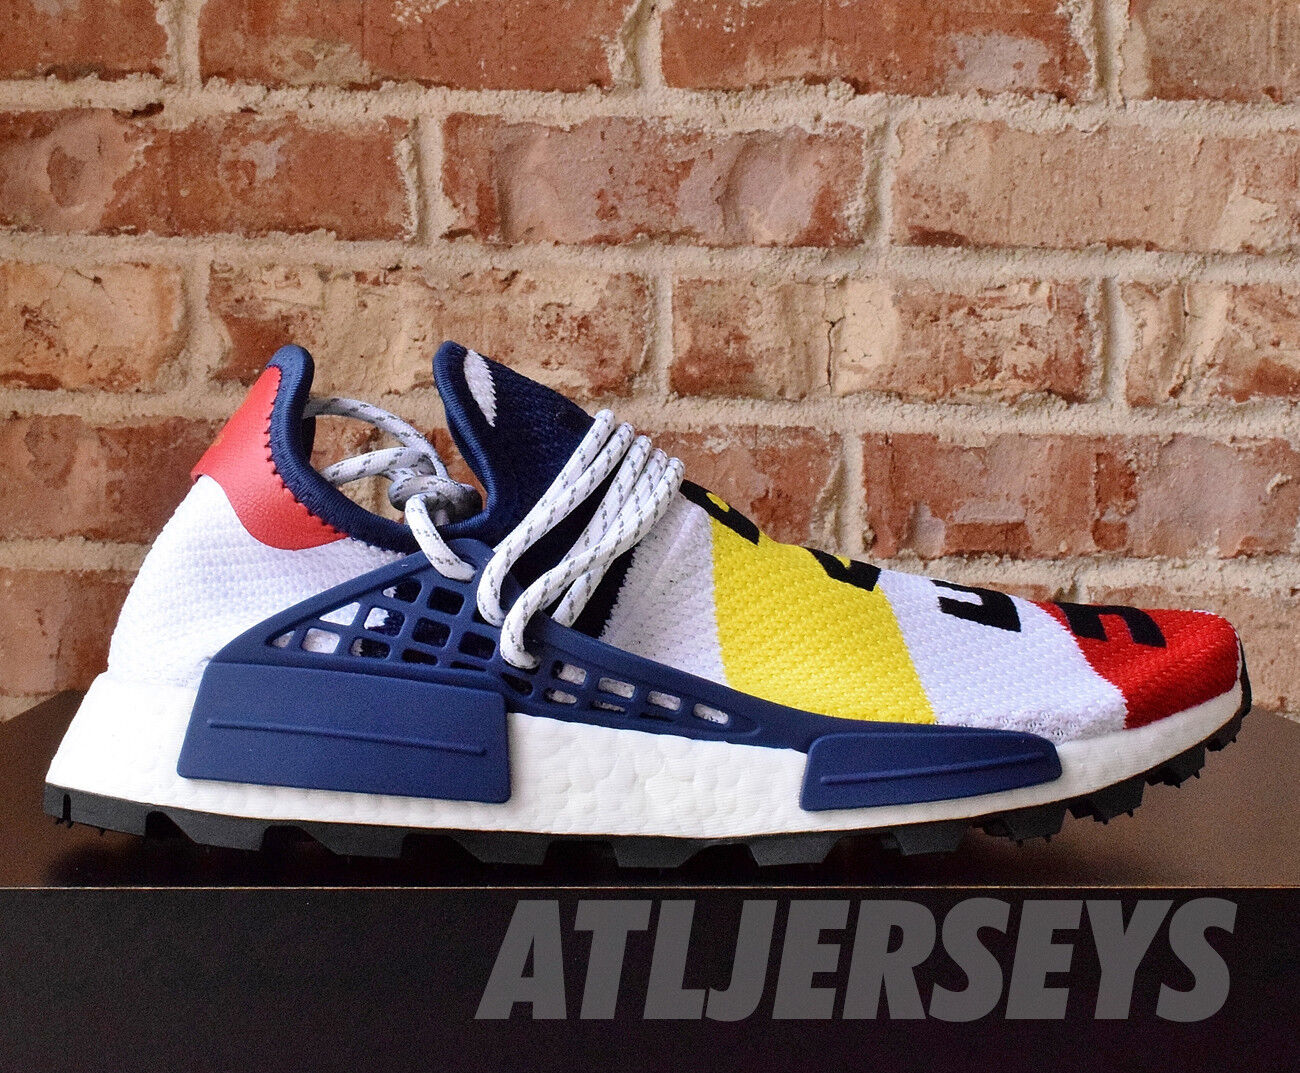 e09289863d8f4 Athletic Shoes Billionaire Boys Club x Adidas Nmd Hu Pharrell 8-13 BBC  Human Race BB9544 ...